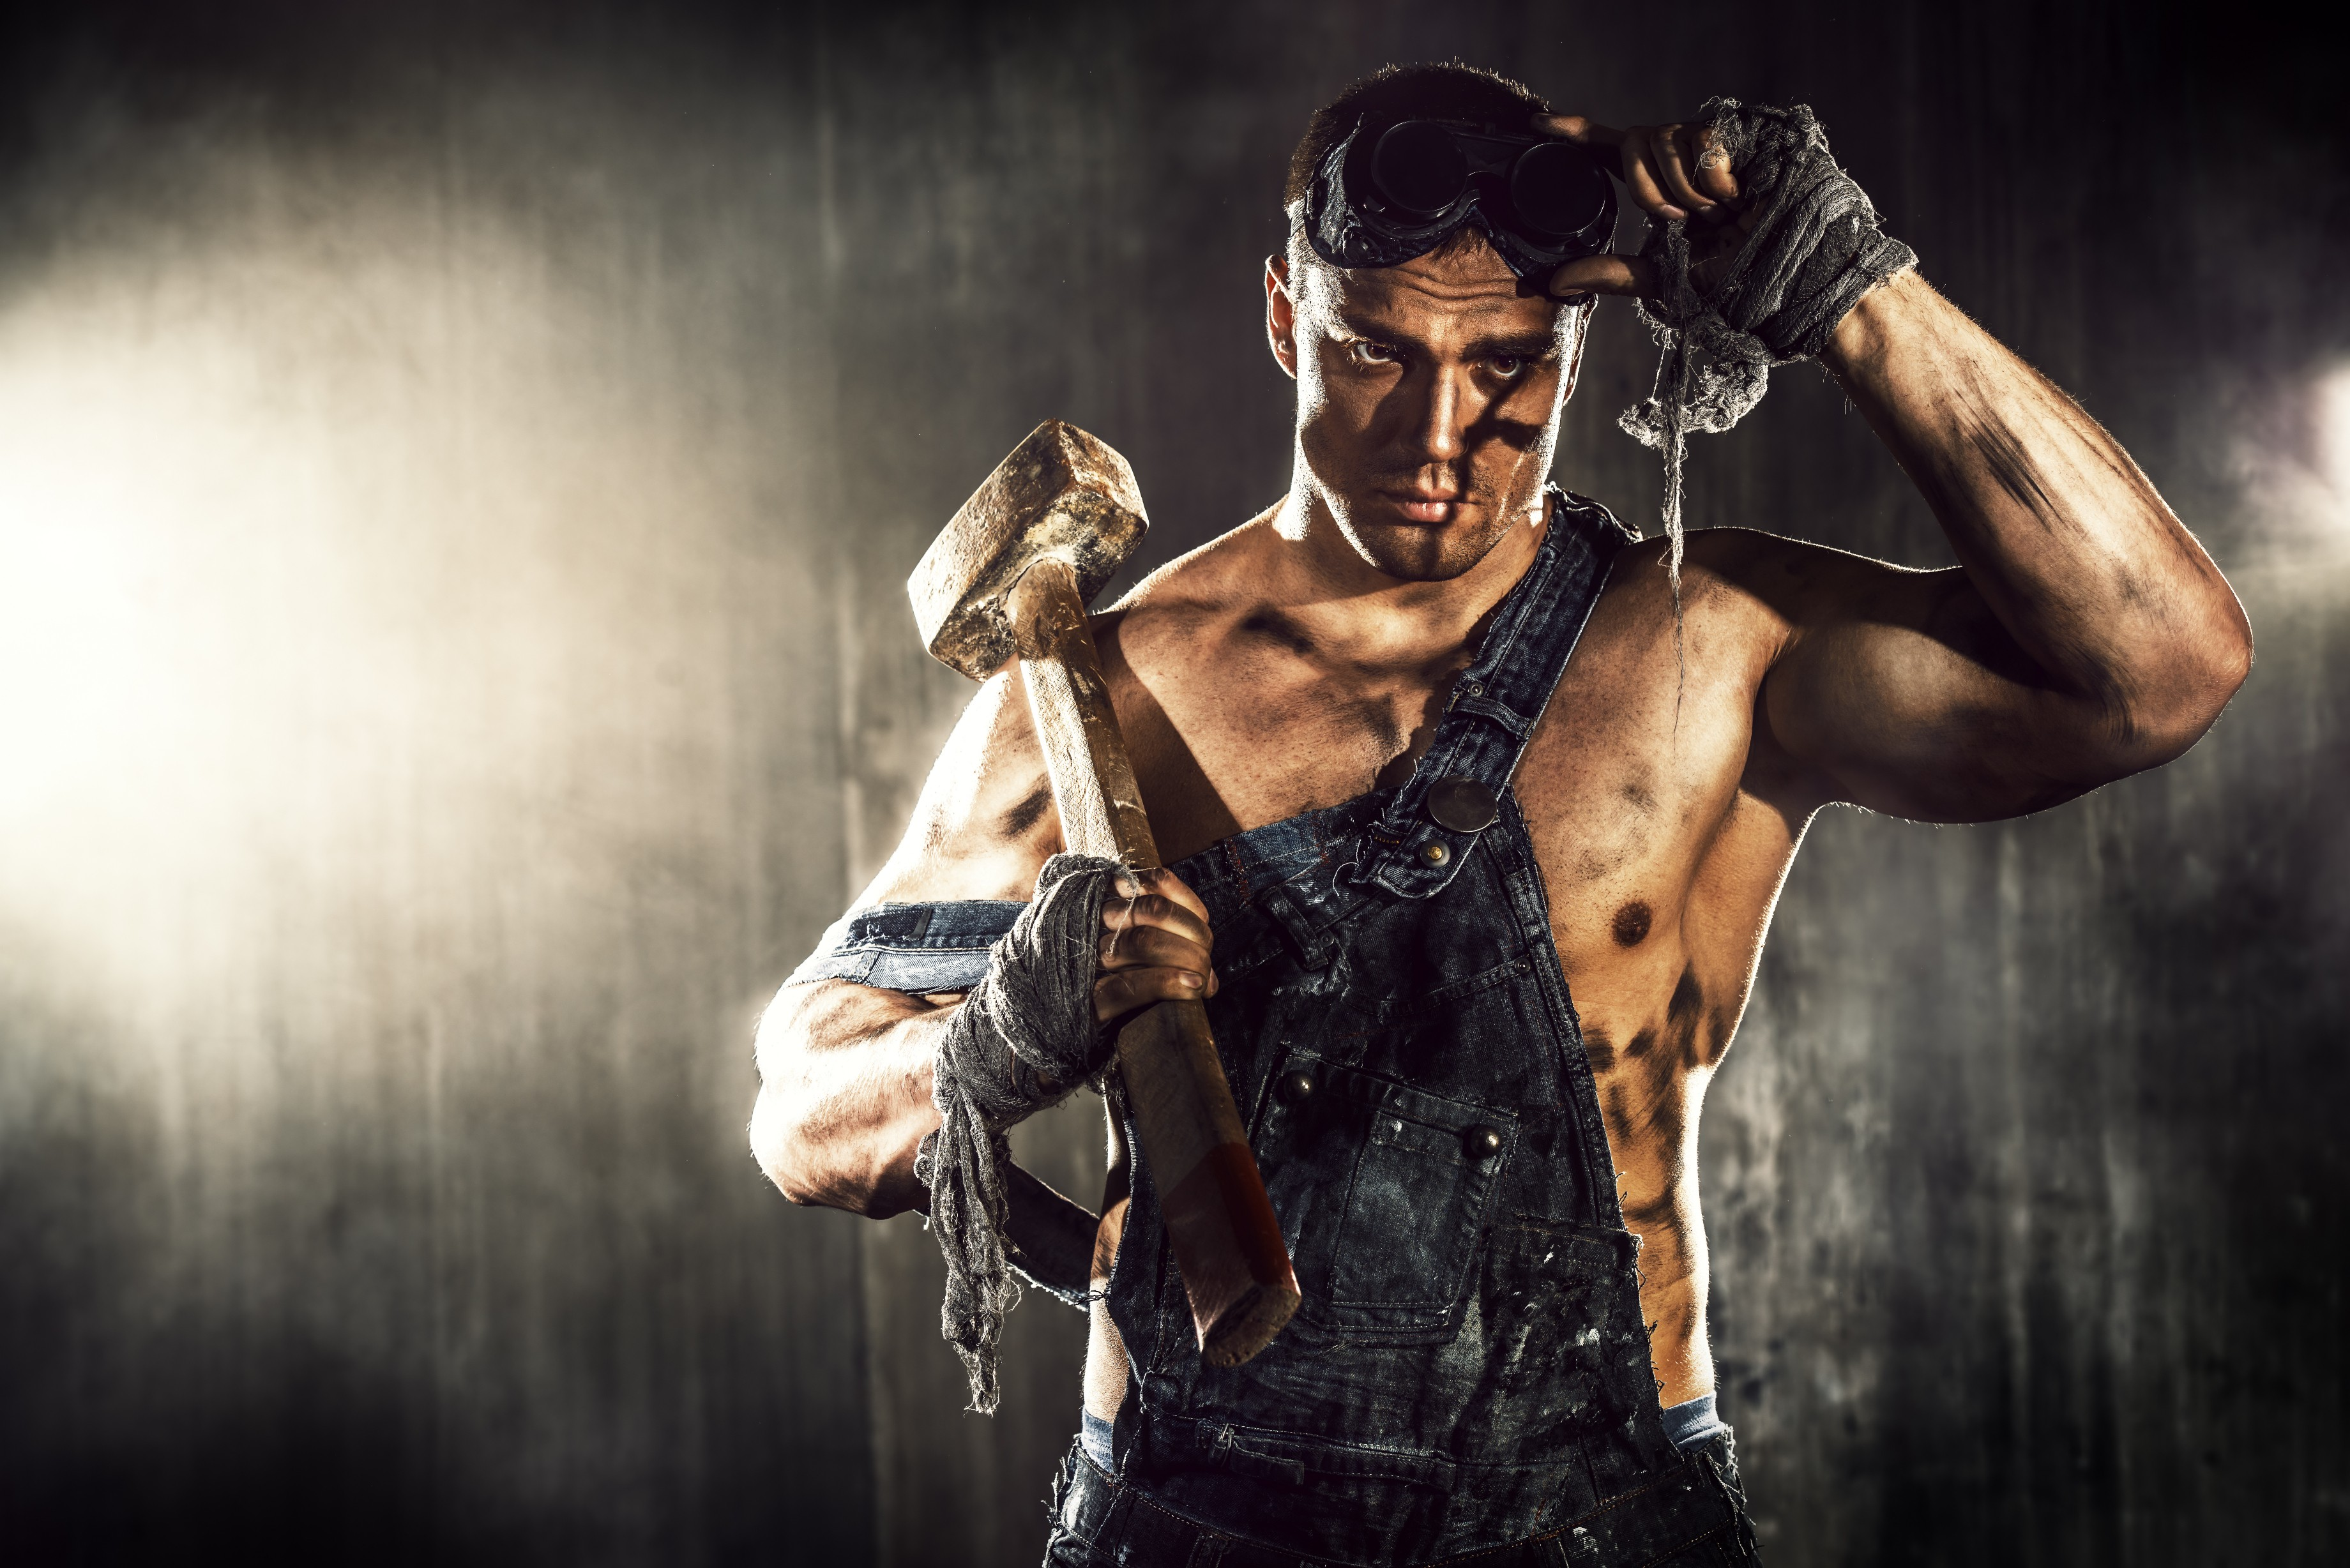 Bodybuilder, HD Photography, 4k Wallpapers, Images